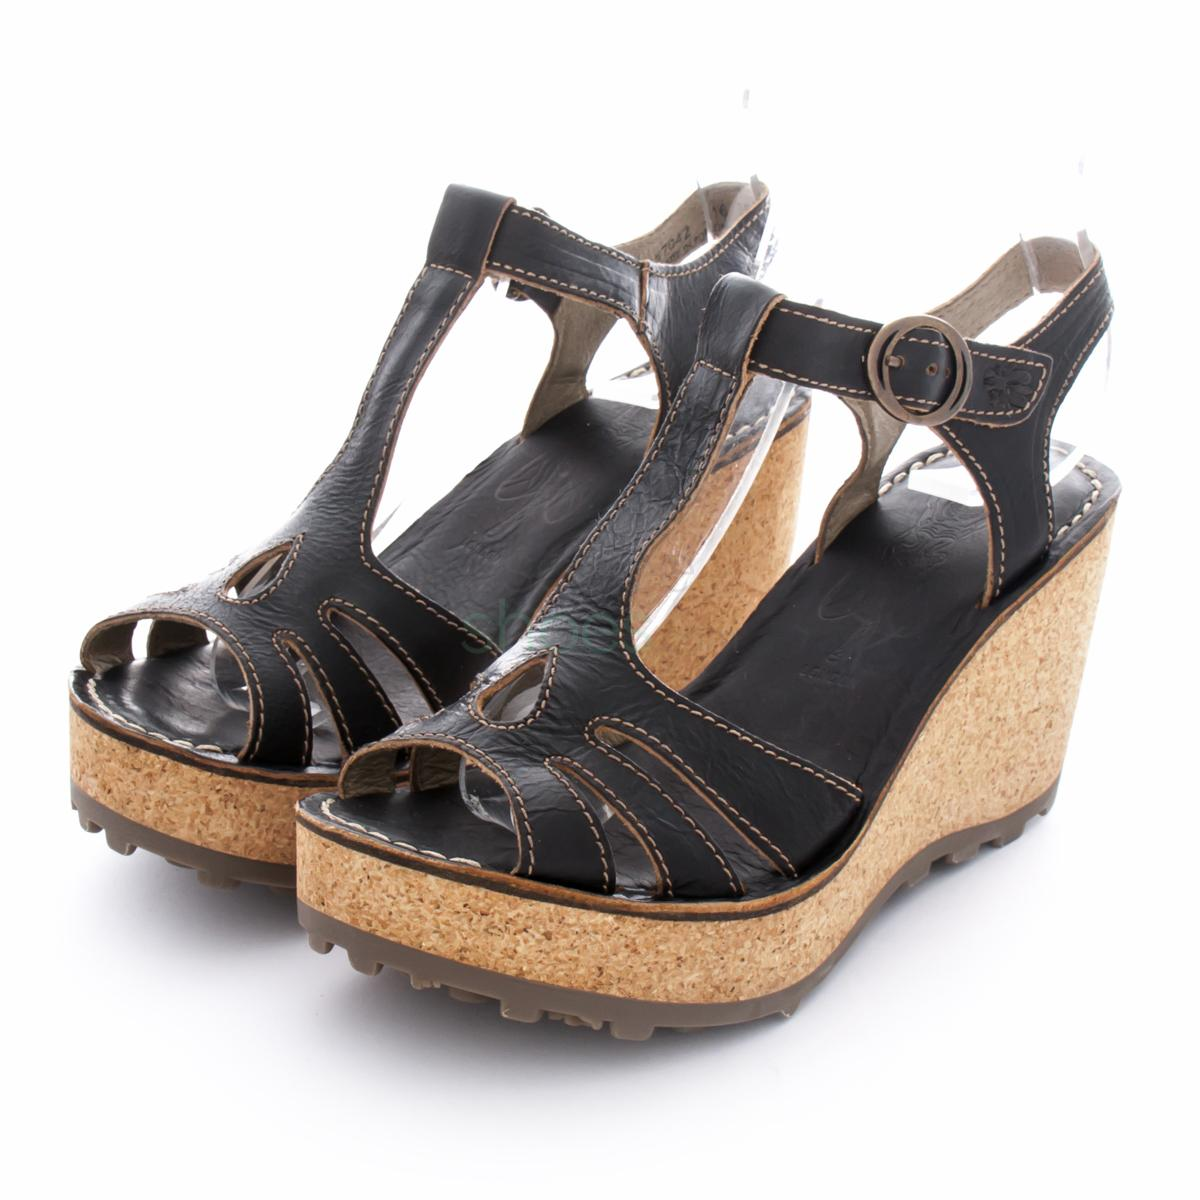 62d751682520c Buy your Sandals FLY LONDON Glam Gold Black P142167042 here | Online ...